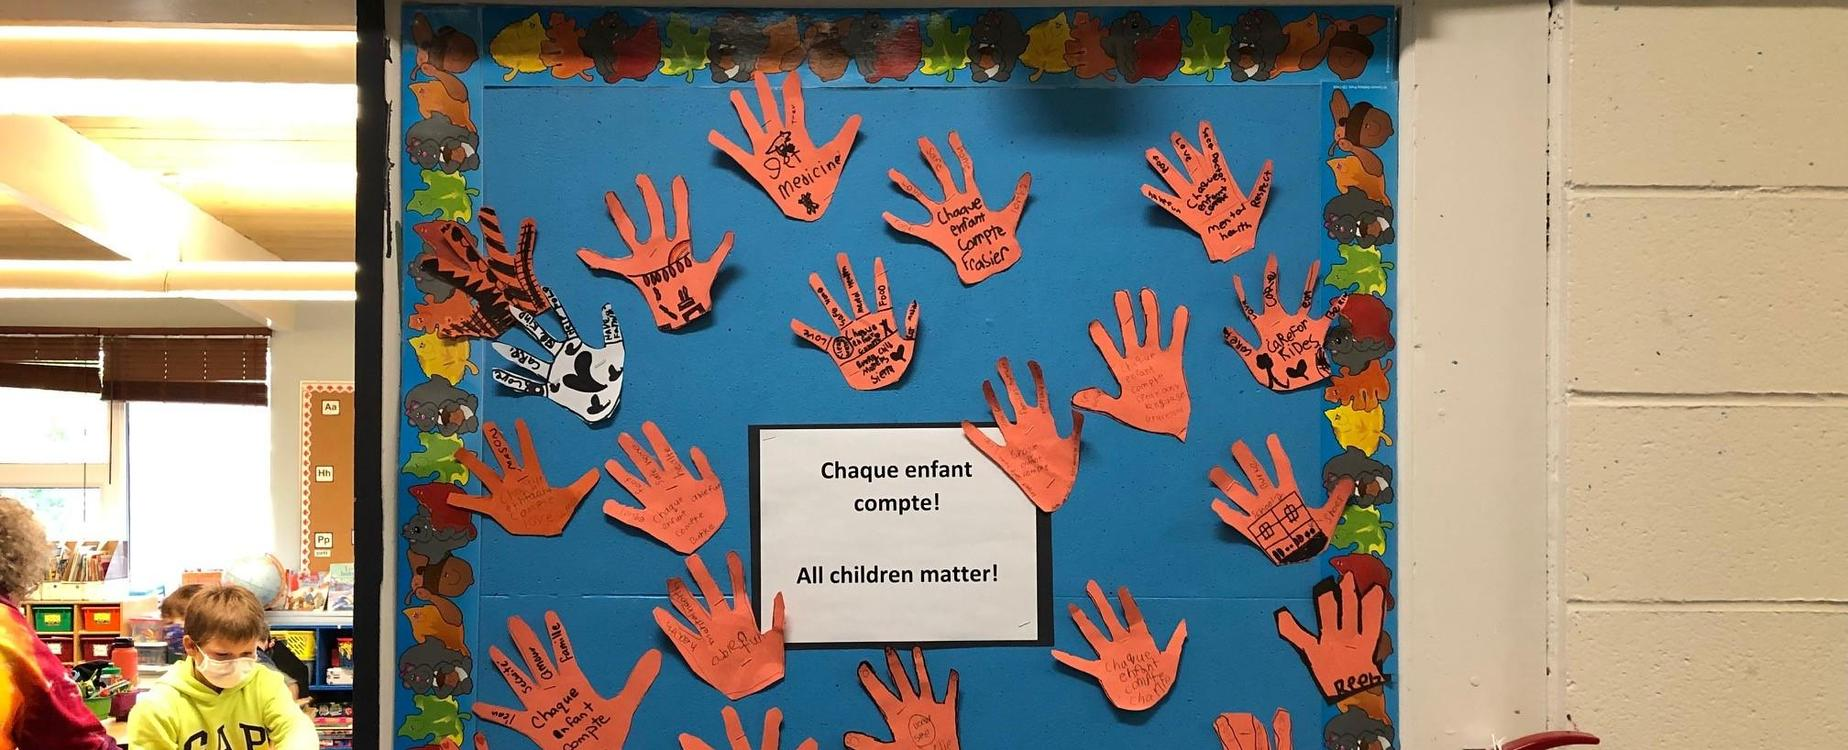 A classroom billboard decorated with orange hand prints, and messages recognizing that